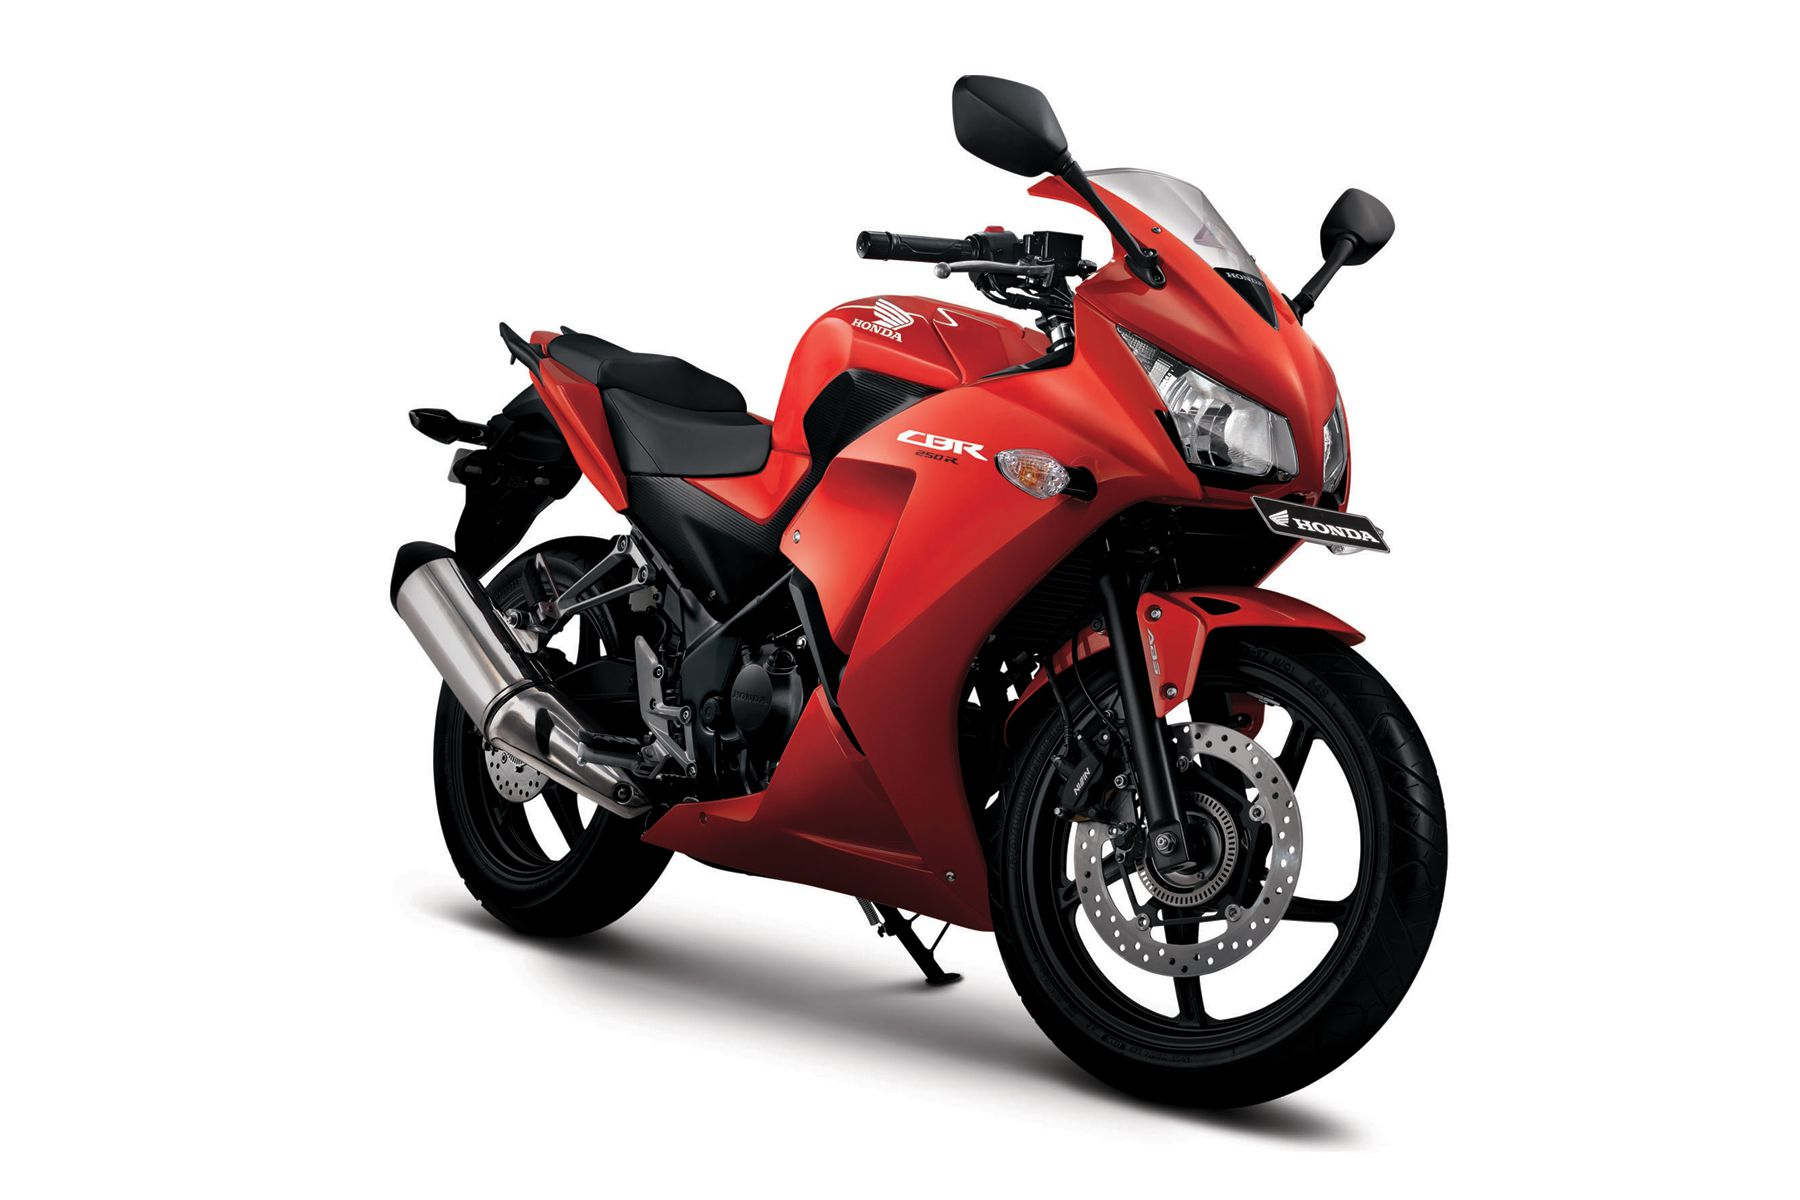 New 2015 Honda Cbr250r Launched With More Power Amp Twin